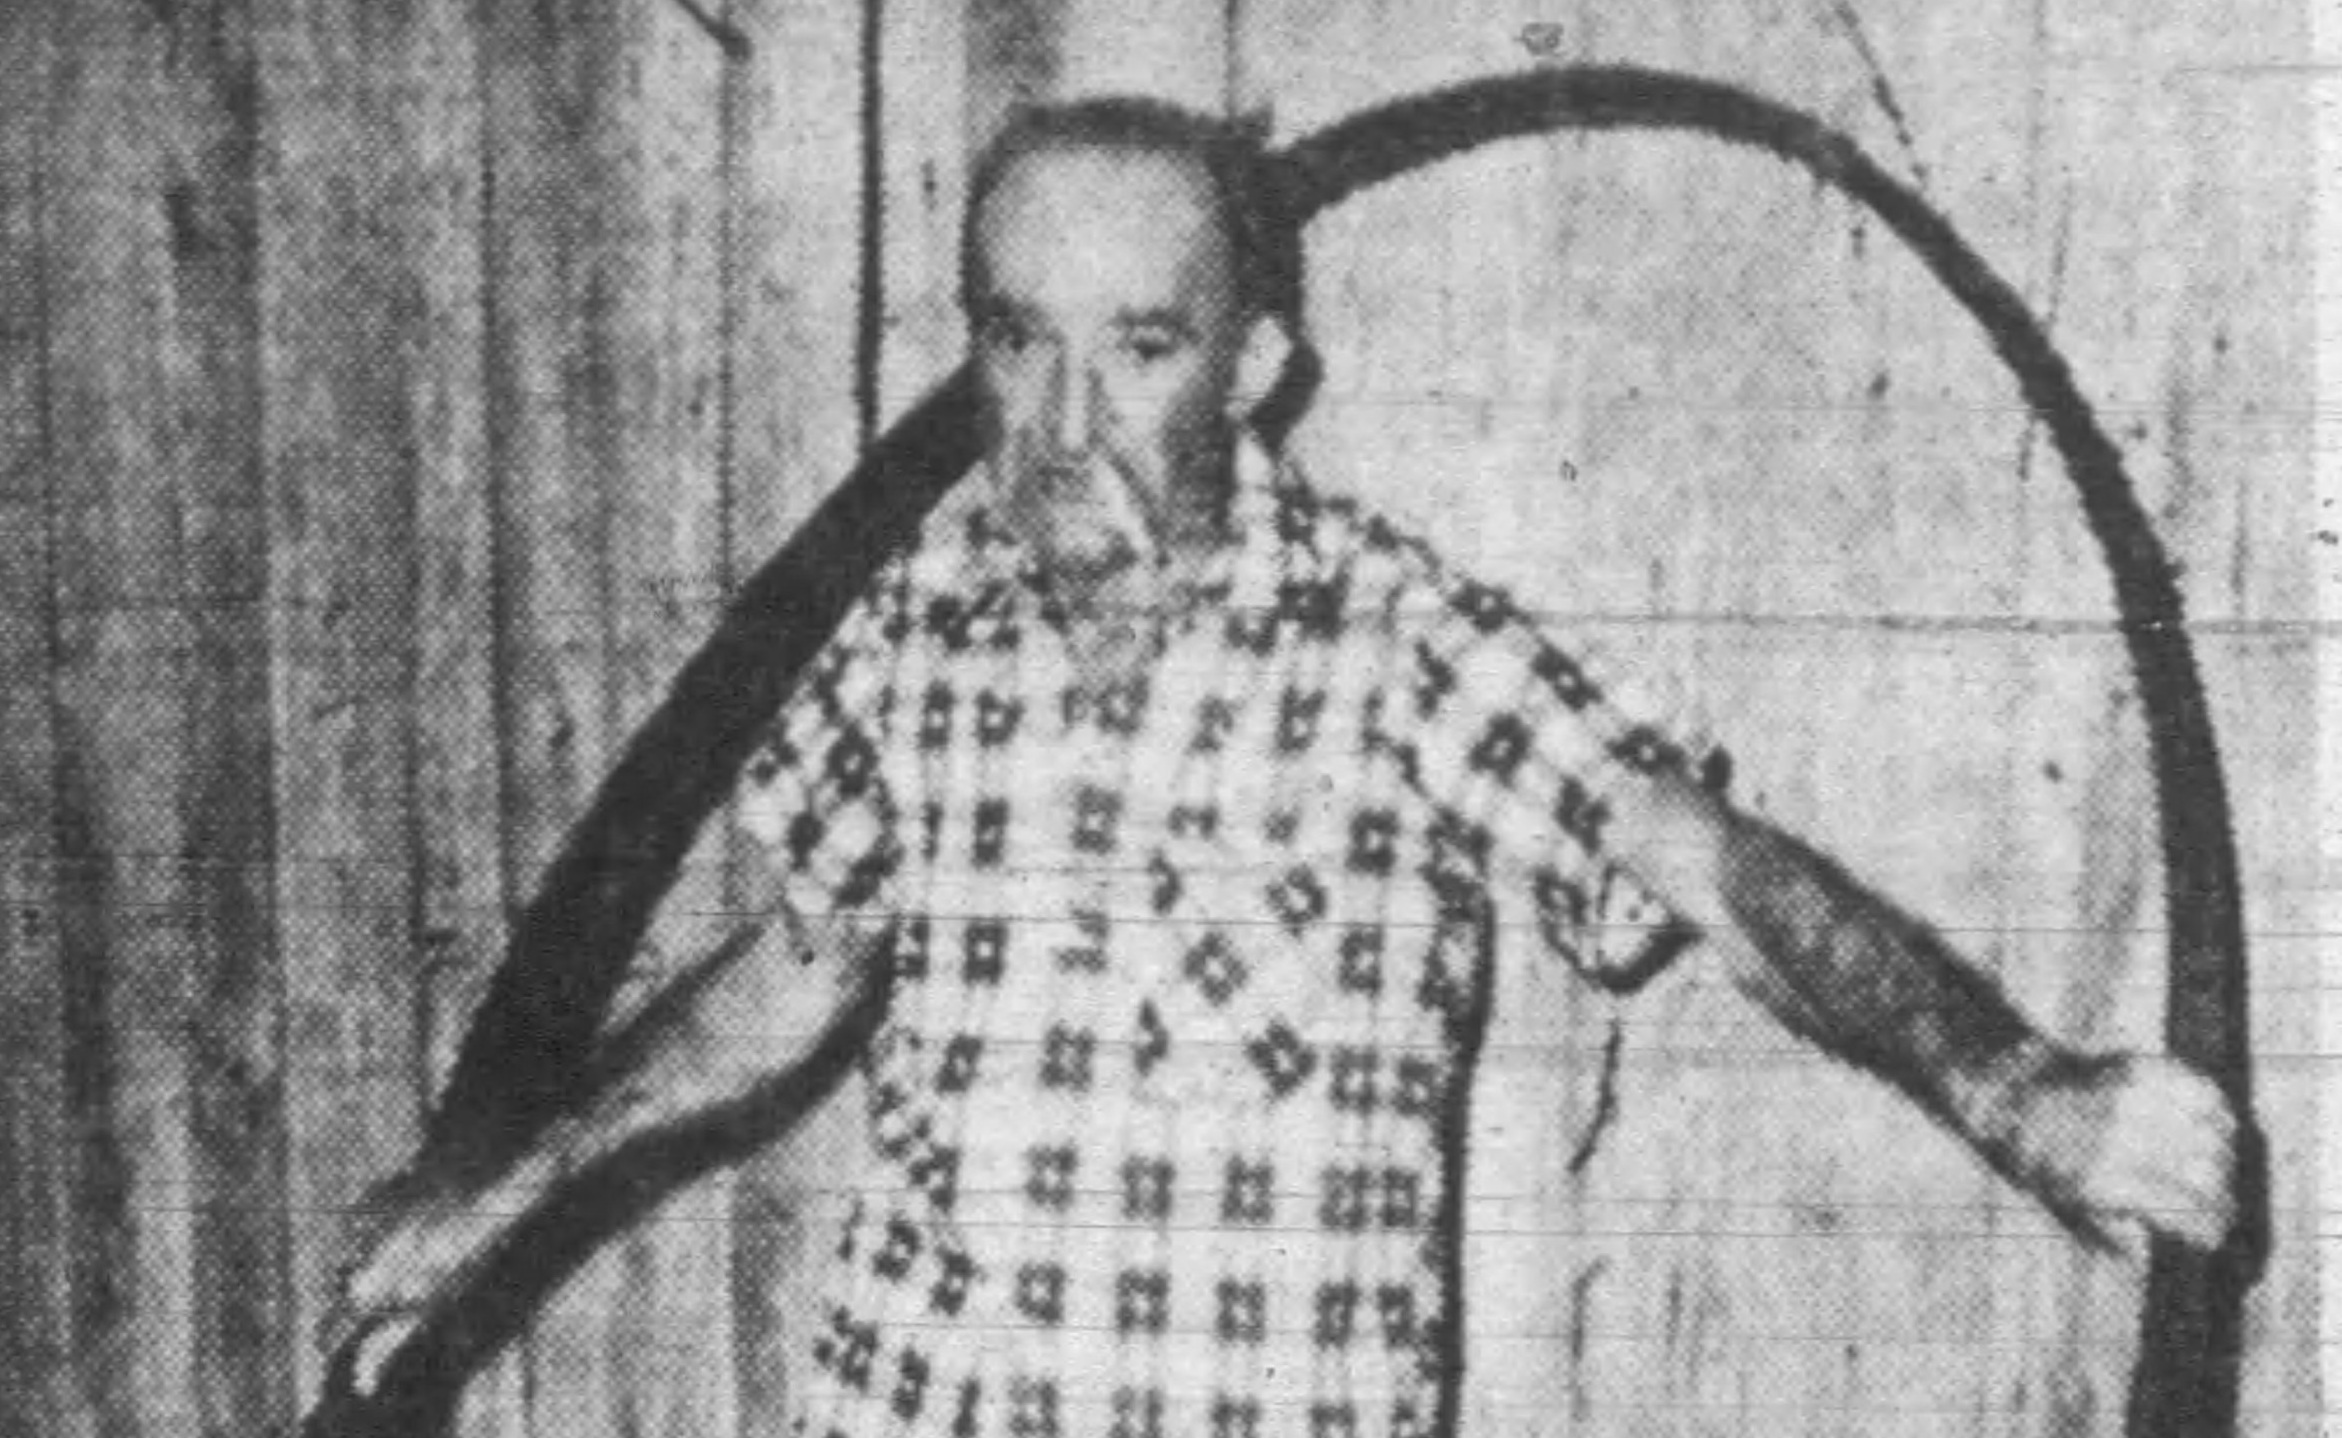 Barnie Waldrop of carthage was one of the more persistent treasure hunters. click photo for more.